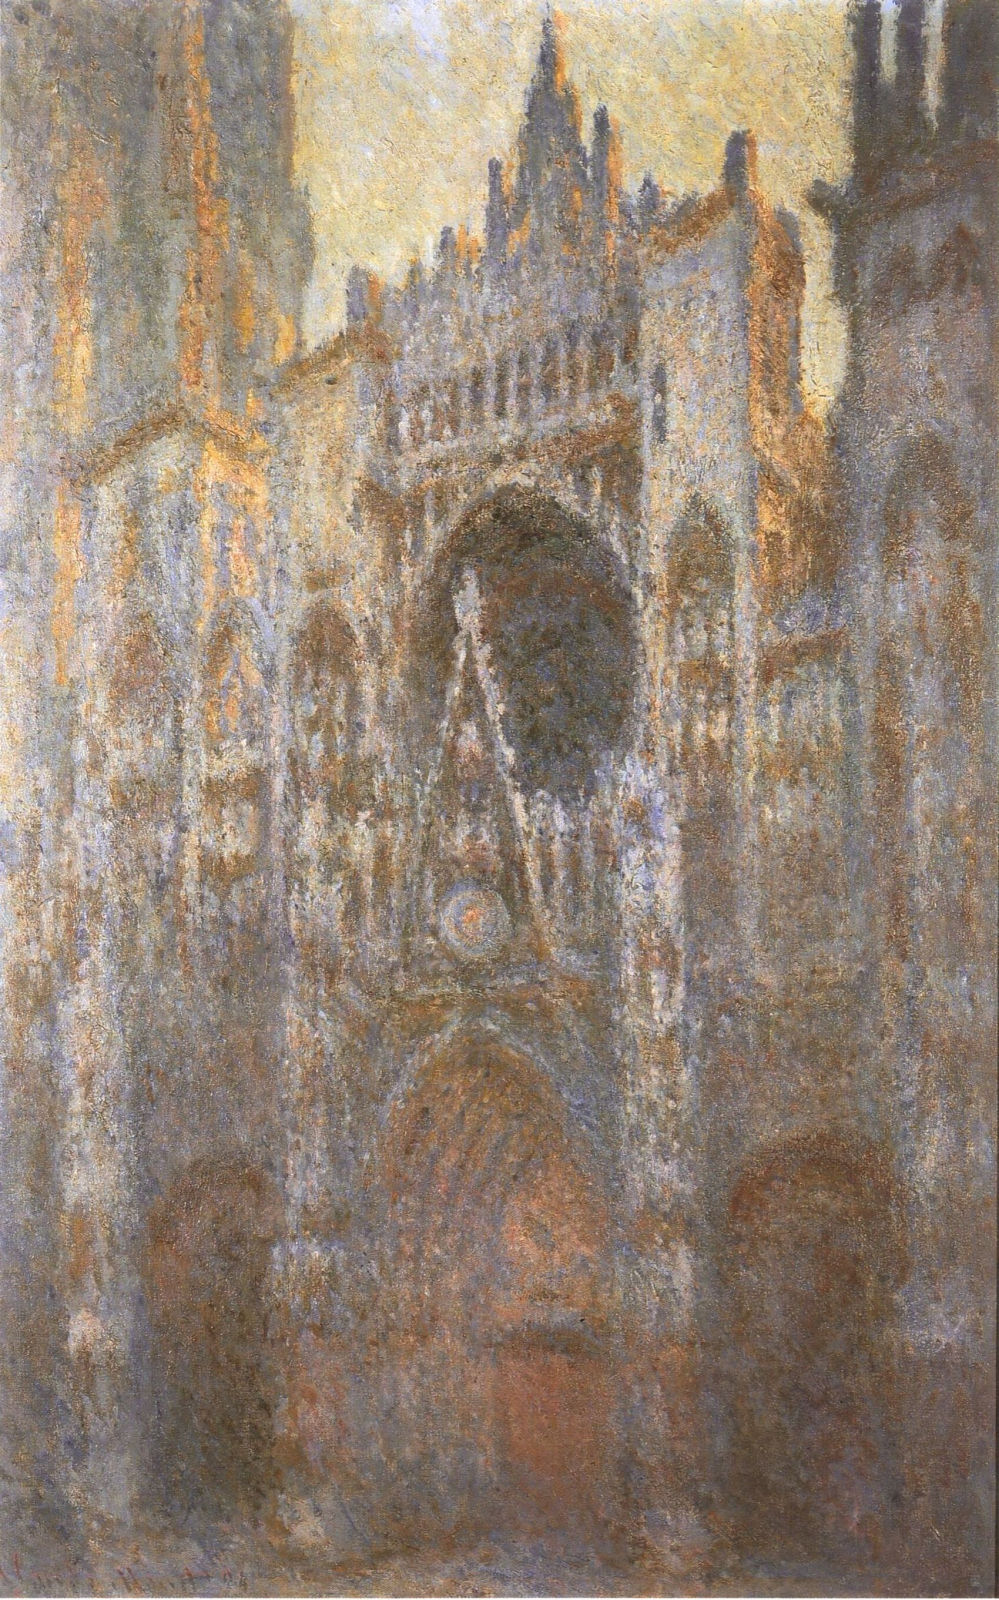 rouen cathedral monet analysis essay